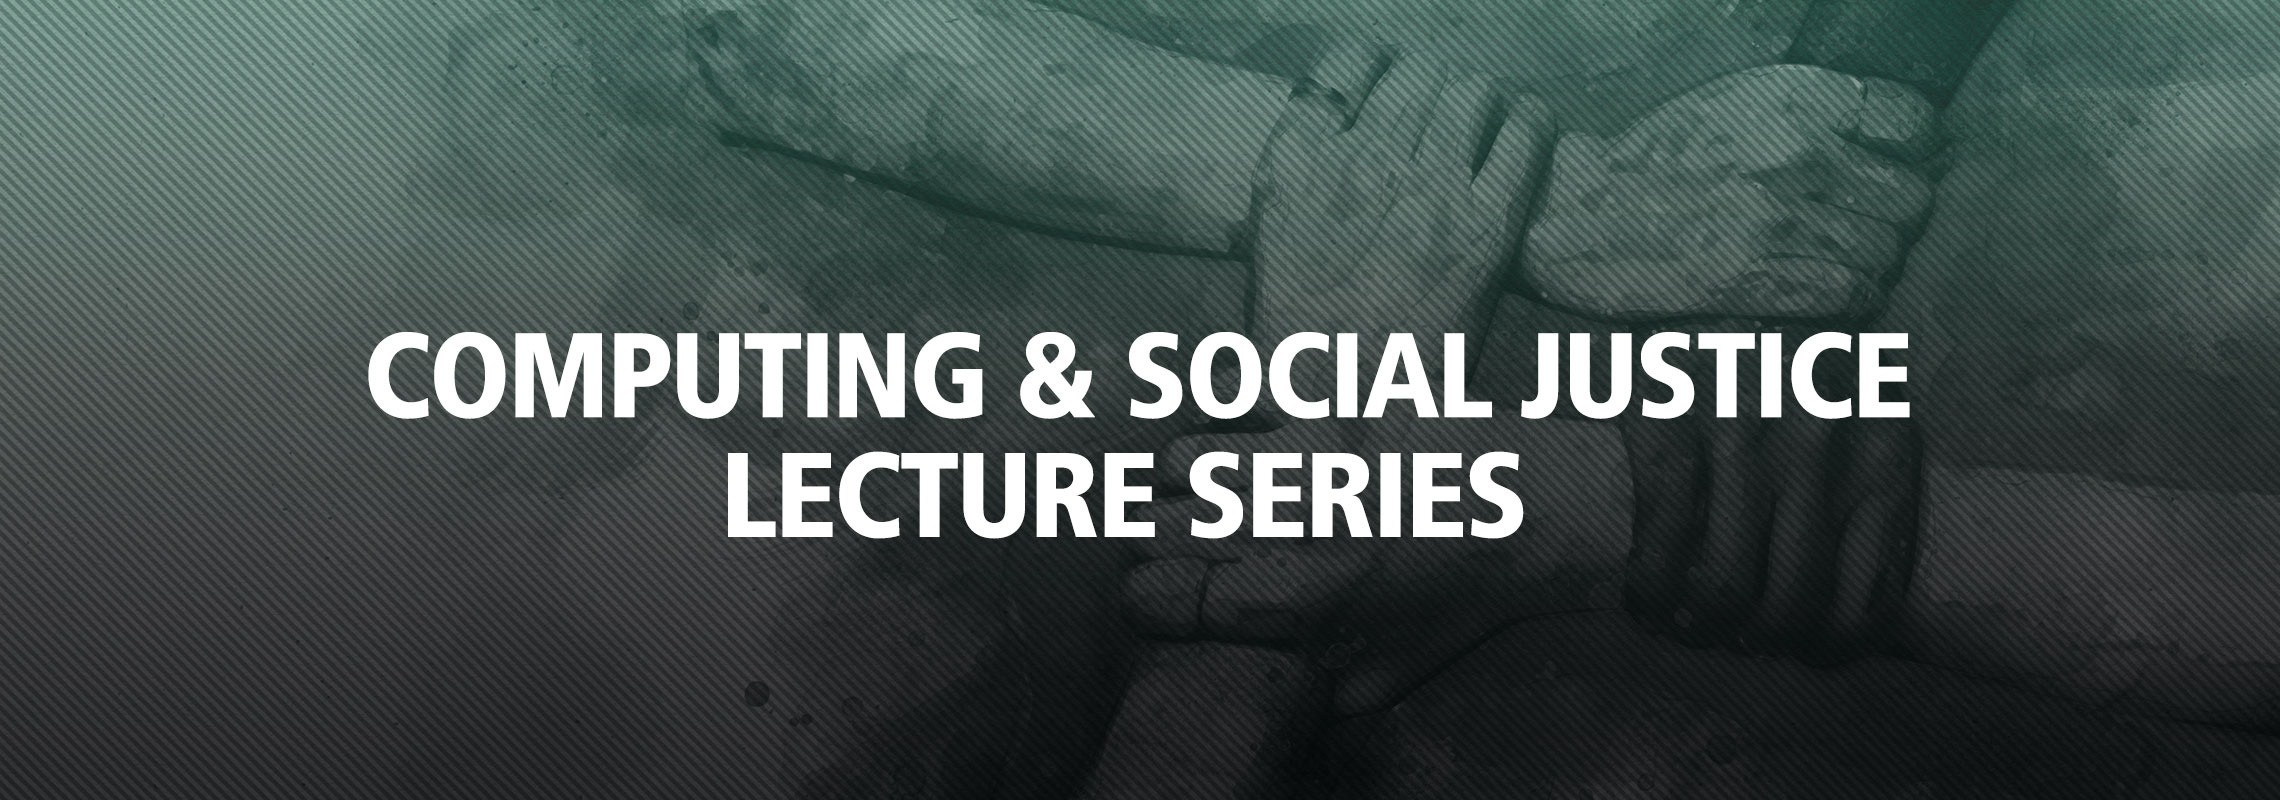 Computing & Social Justice Lecture Series